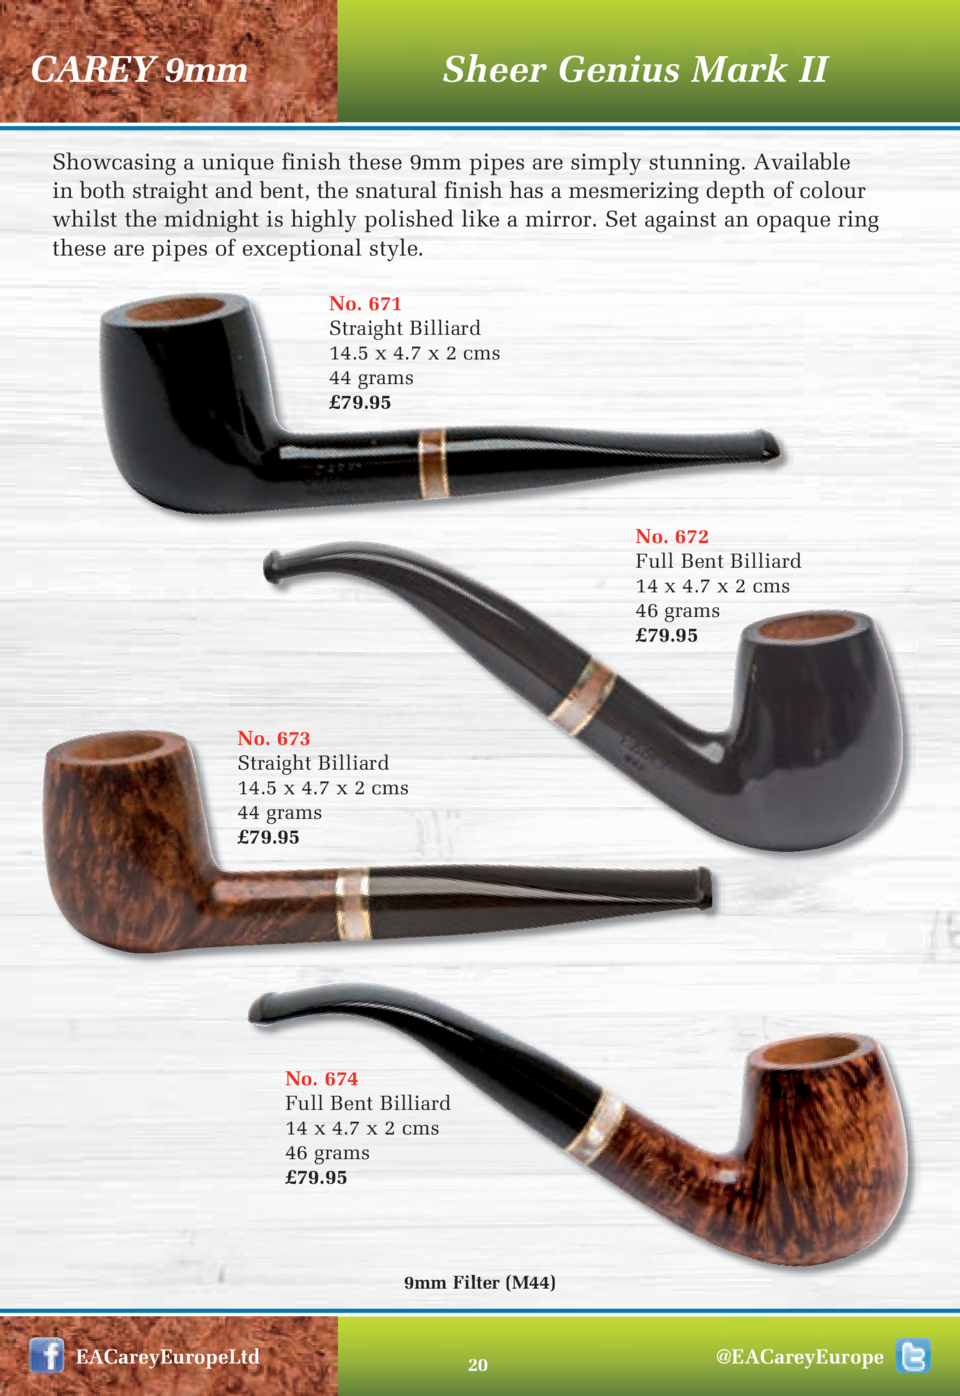 CAREY 9mm  Sheer Genius Mark II  Showcasing a unique finish these 9mm pipes are simply stunning. Available in both straigh...